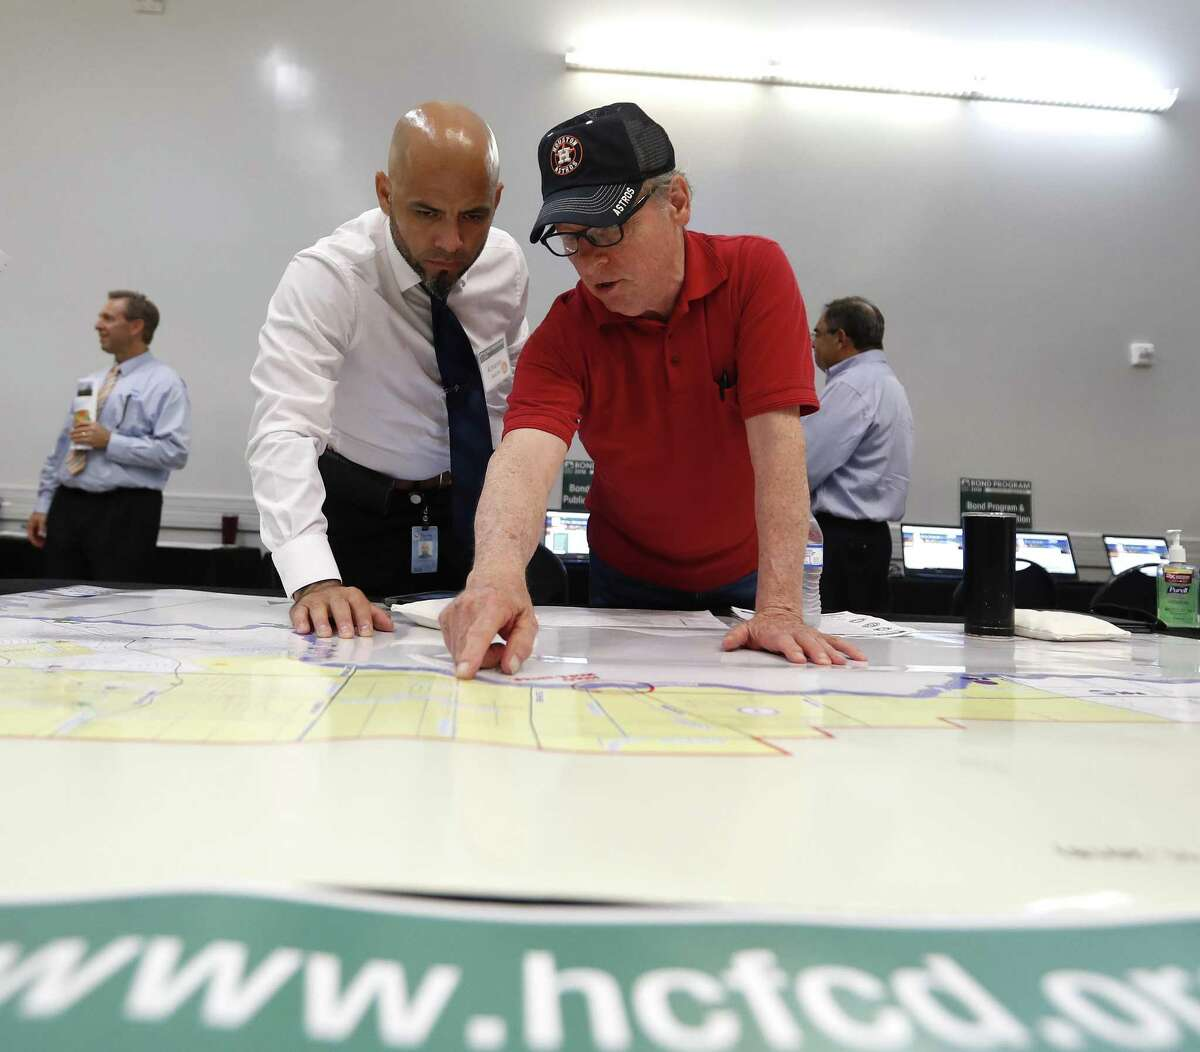 Armando Sanchez, left, helps Don Corolla as they point to a spot on a map as Harris County held one in a series of public meetings on the $2.5 billion flood bond proposal at the El Franco Lee Community Center, Tuesday, July 17, 2018, in Houston. ( Karen Warren / Houston Chronicle )